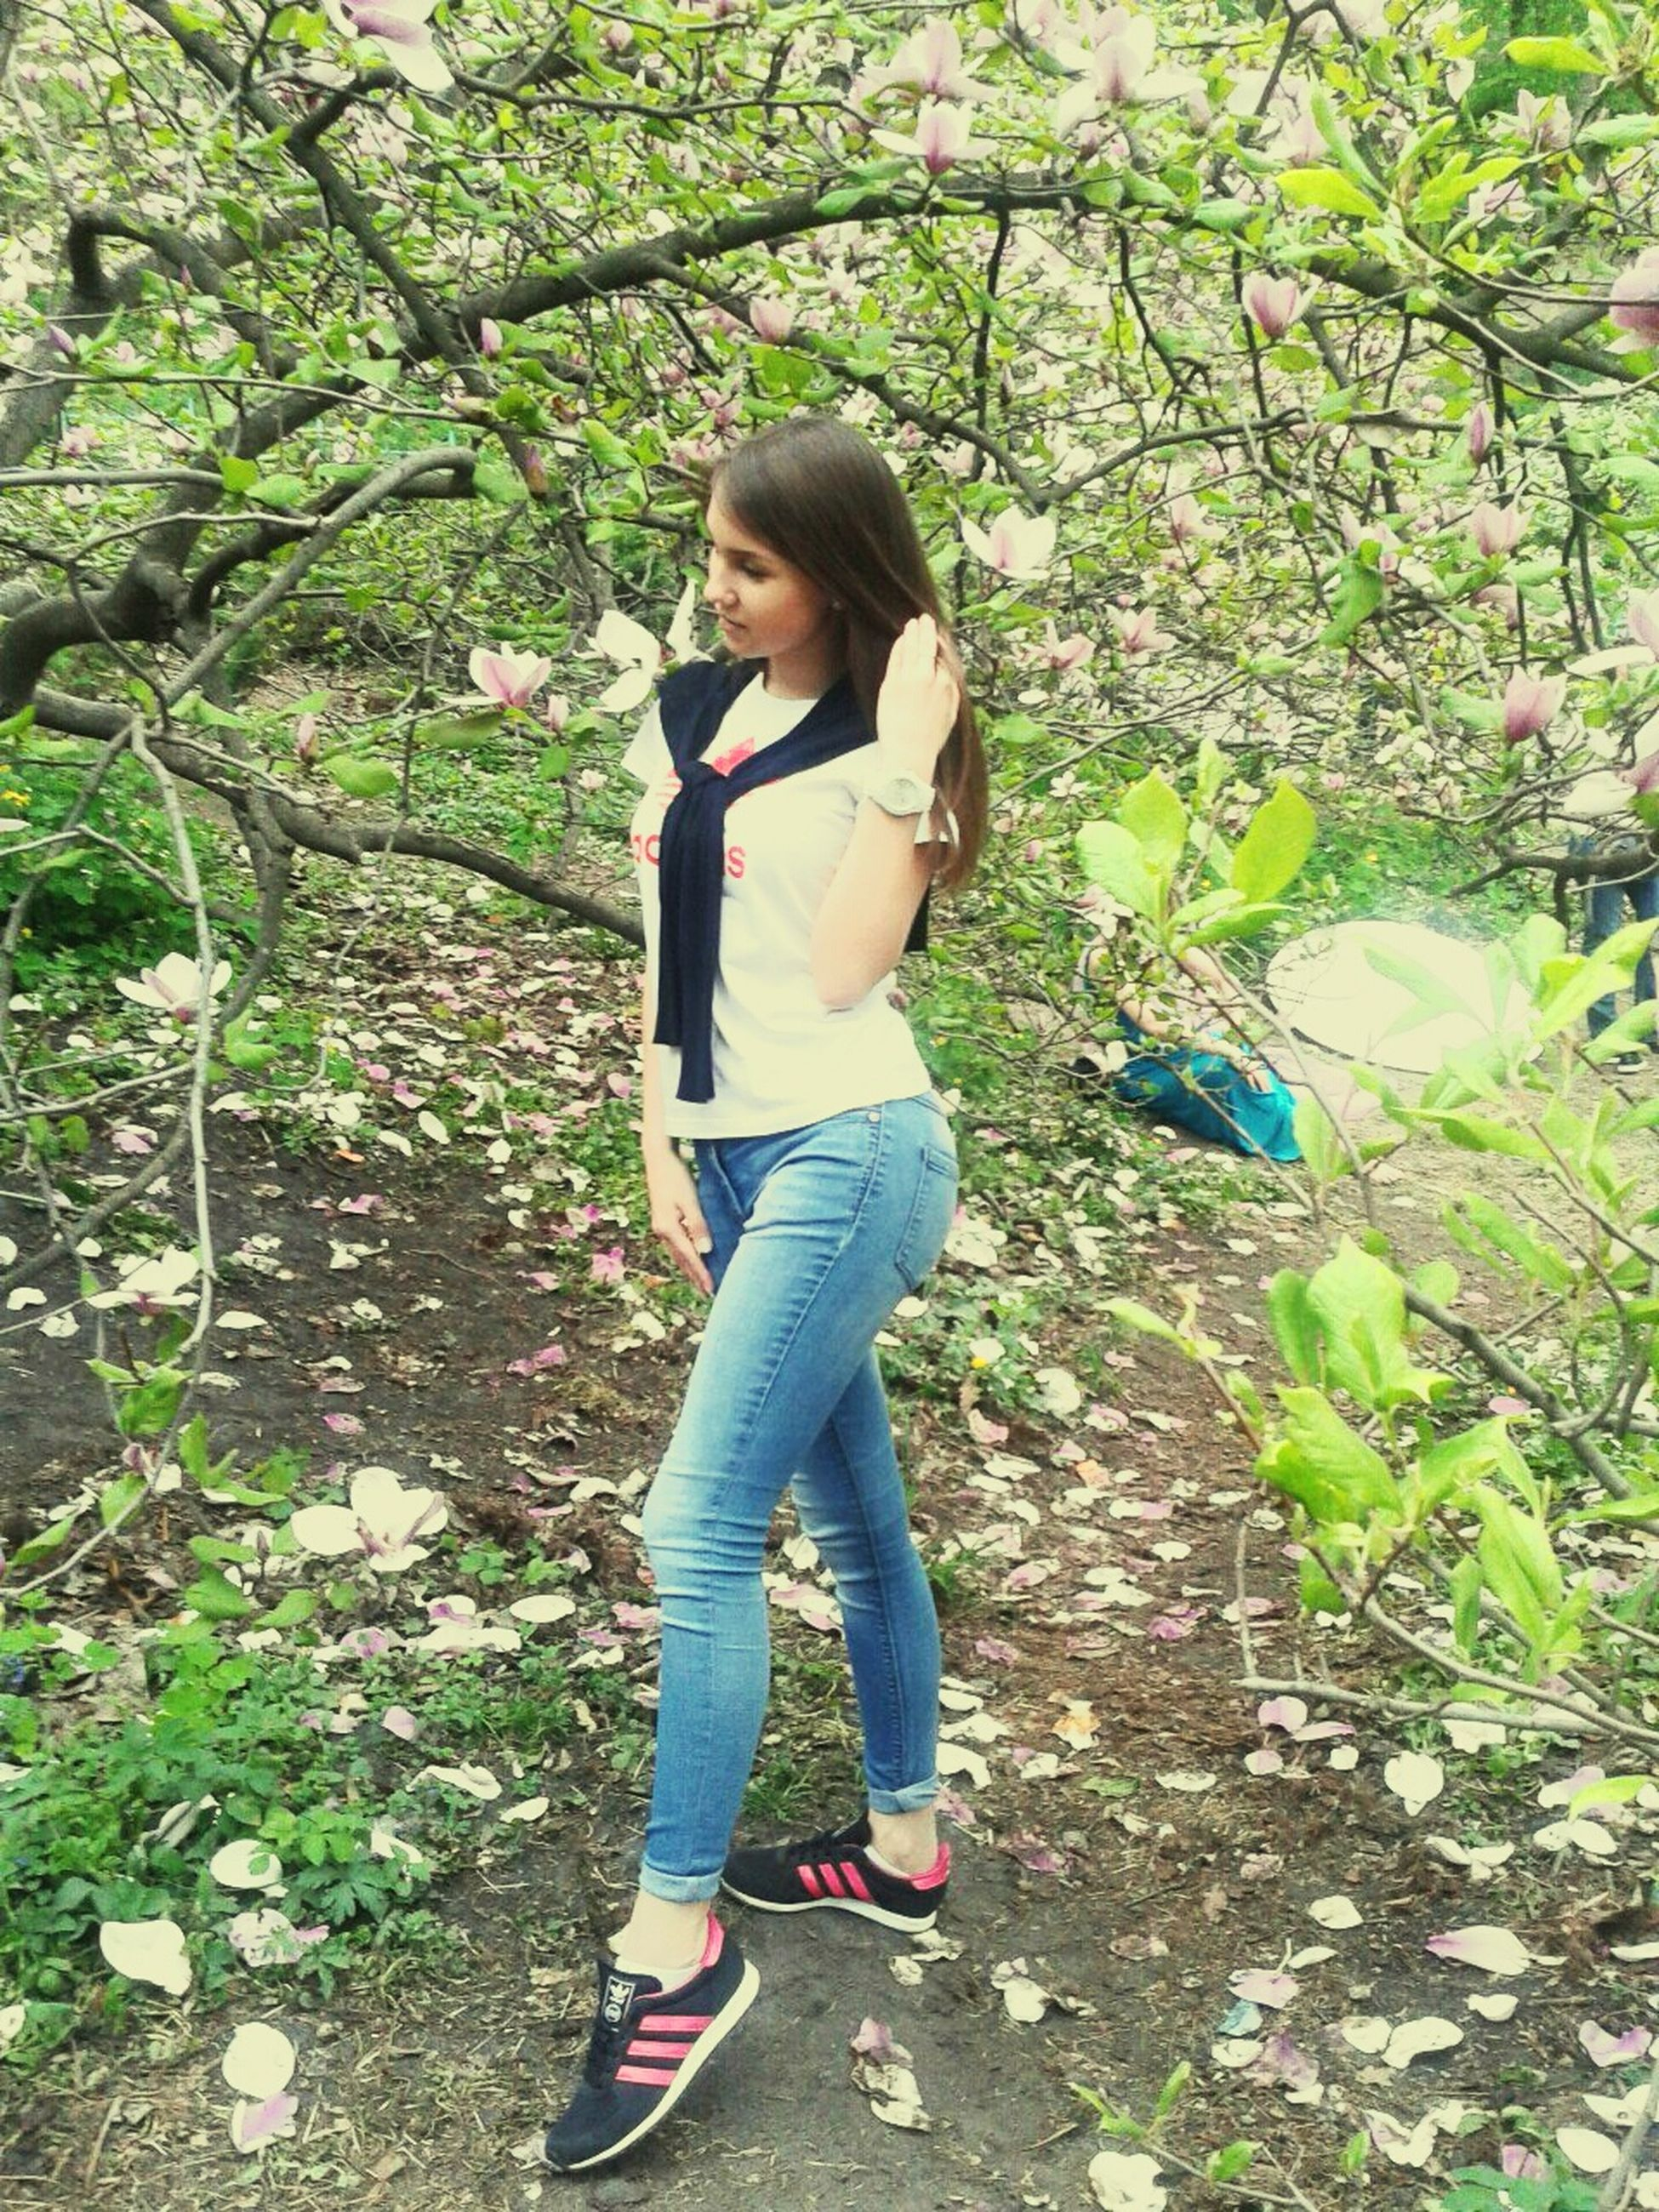 full length, casual clothing, lifestyles, leisure activity, tree, person, childhood, elementary age, standing, forest, boys, growth, plant, nature, young adult, day, park - man made space, girls